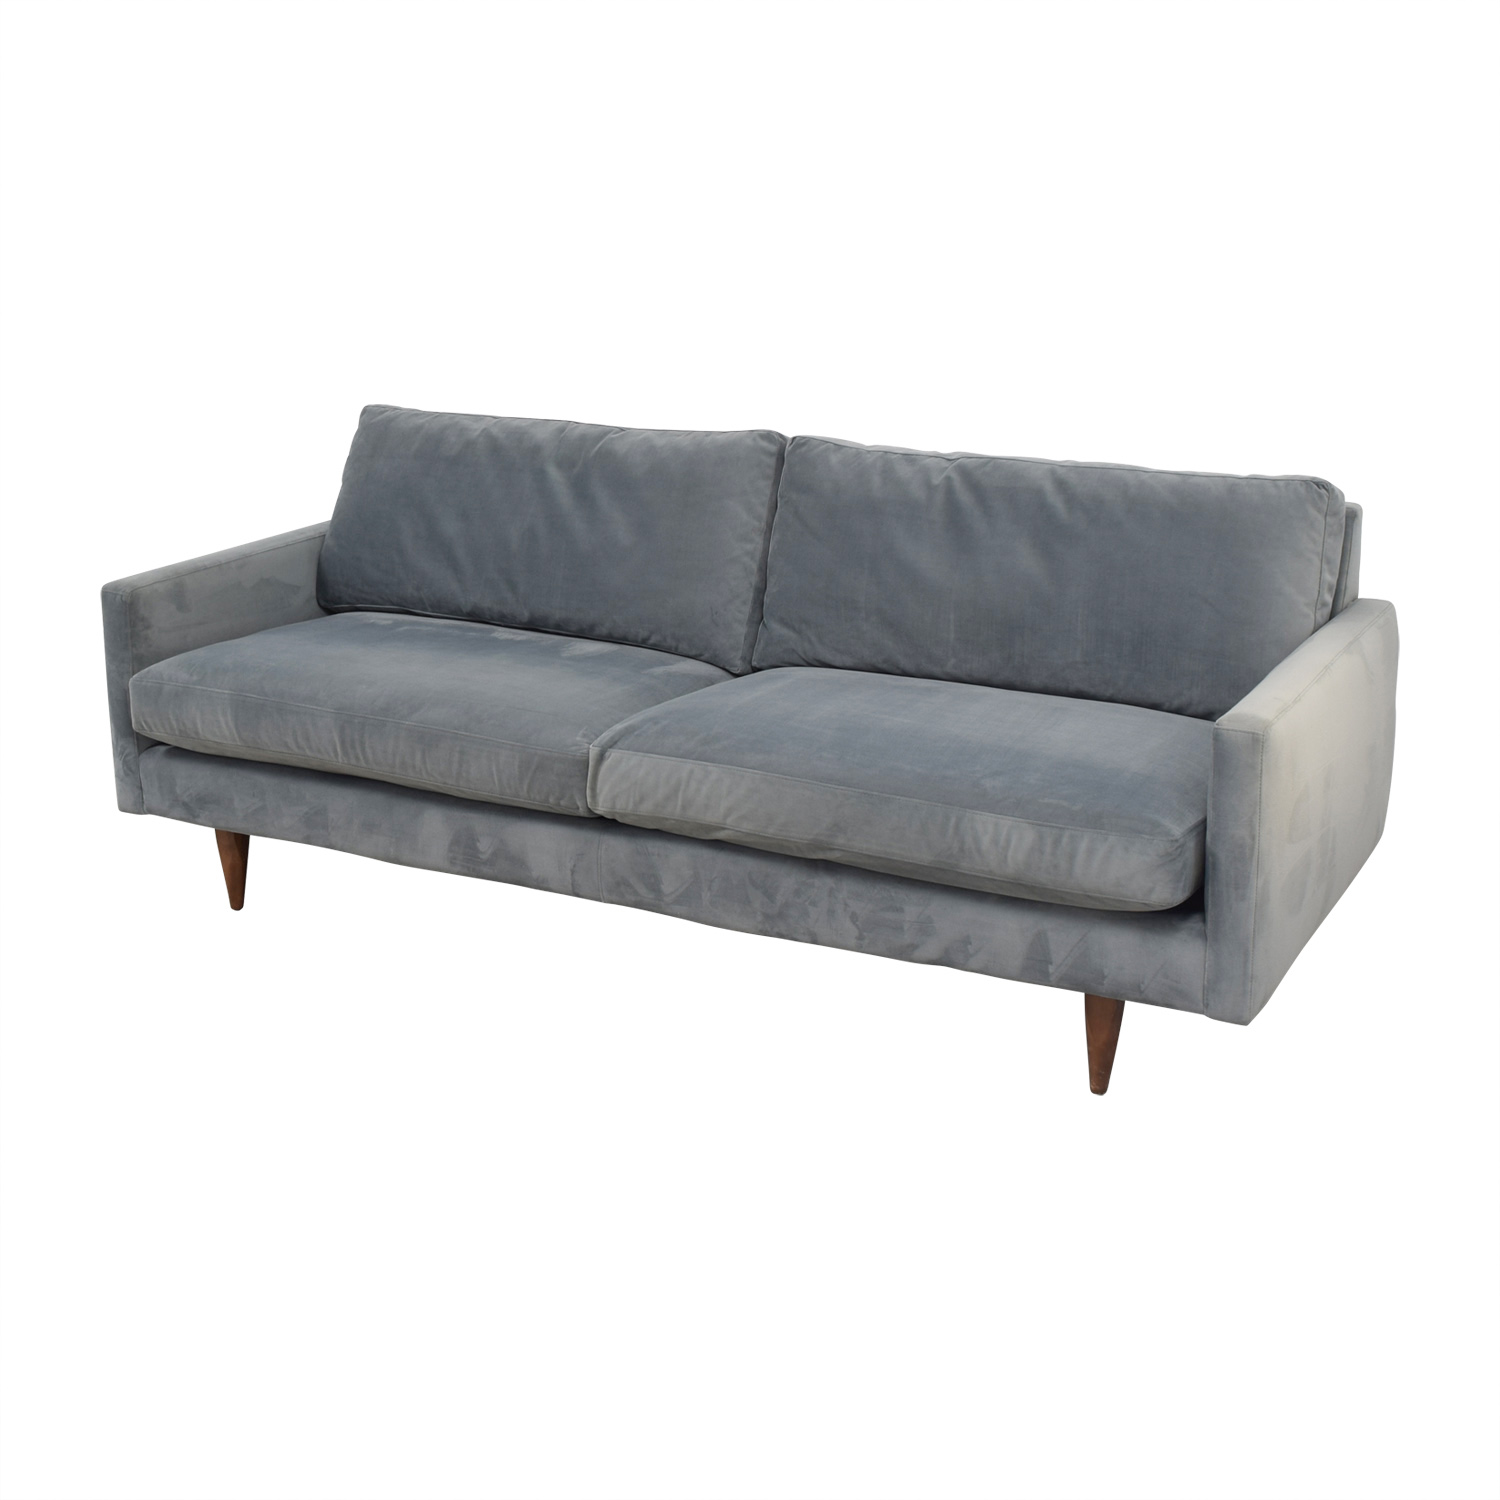 Room & Board Room & Board Jasper Sofa In Slate